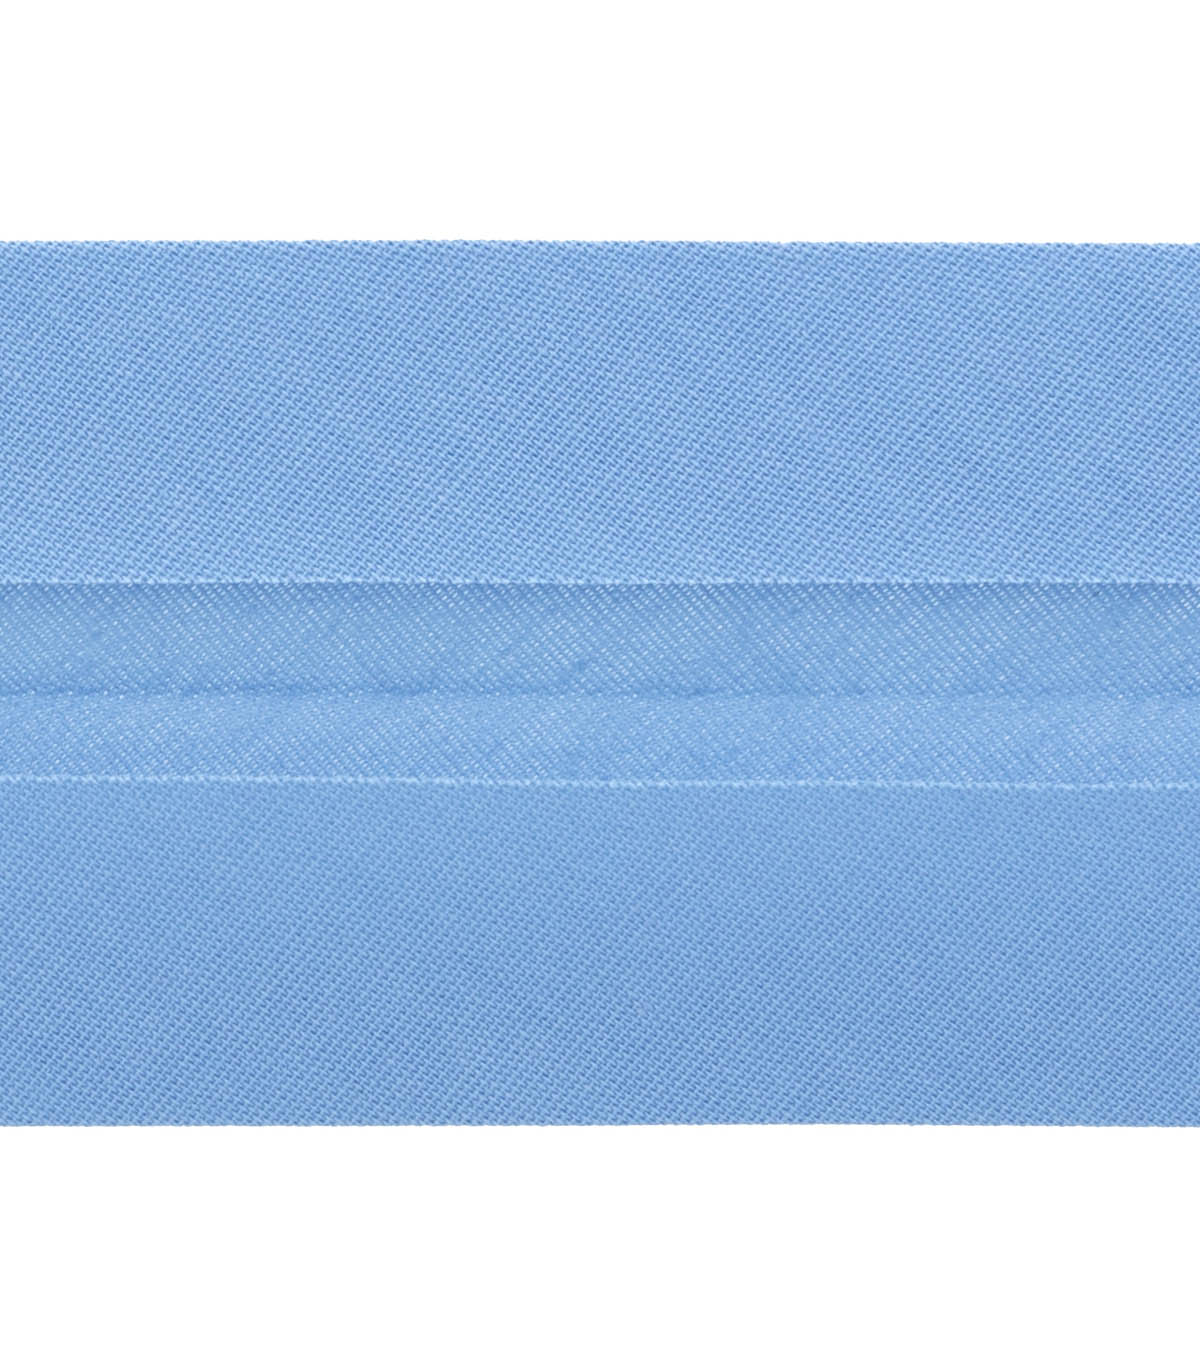 Wrights Double Fold Quilt Binding Bias Tape 7/8\u0027\u0027x3 yds-Delft